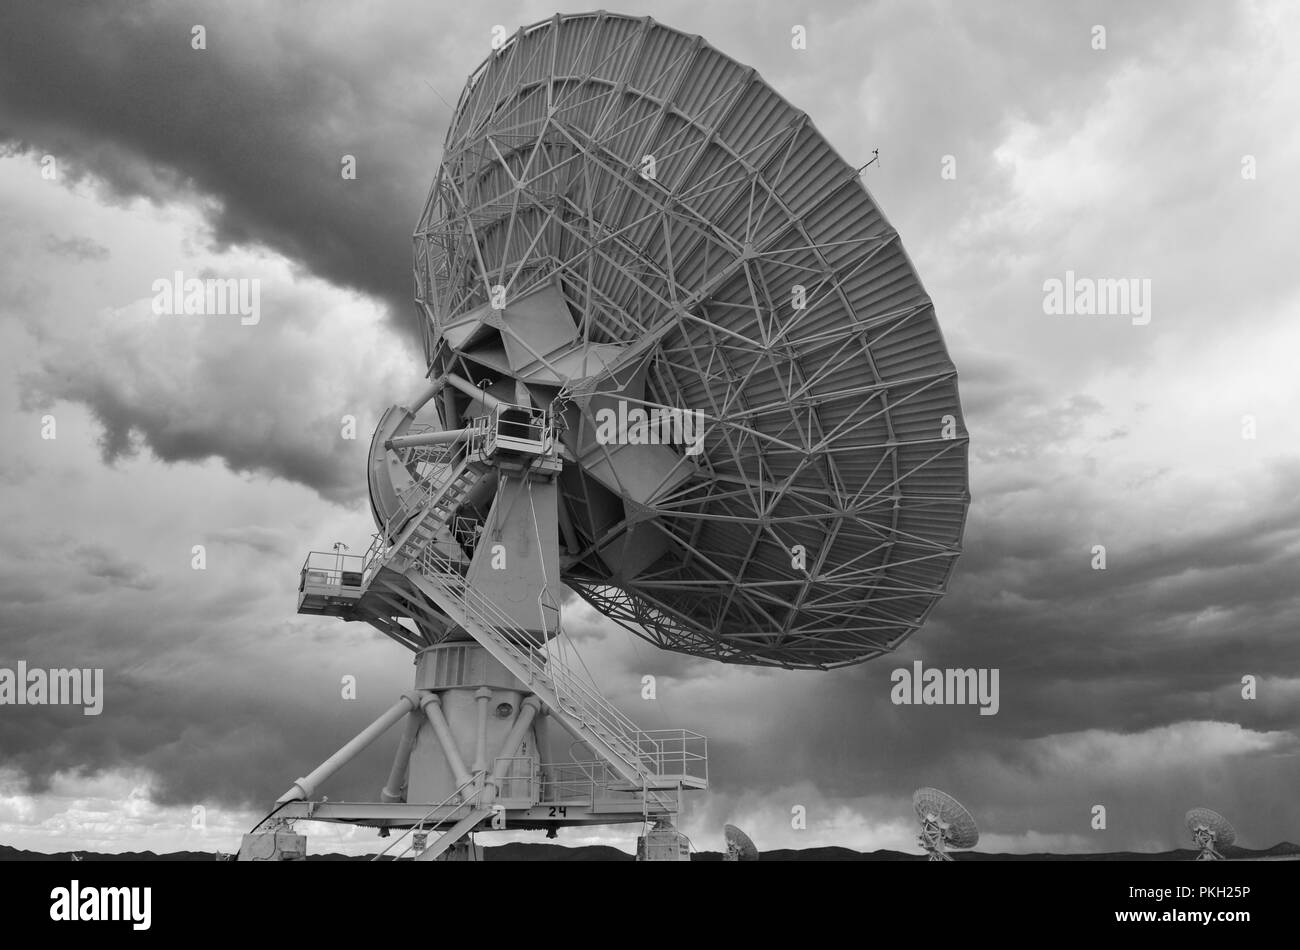 Very Large Array satellite dishes, New Mexico, USA - Stock Image